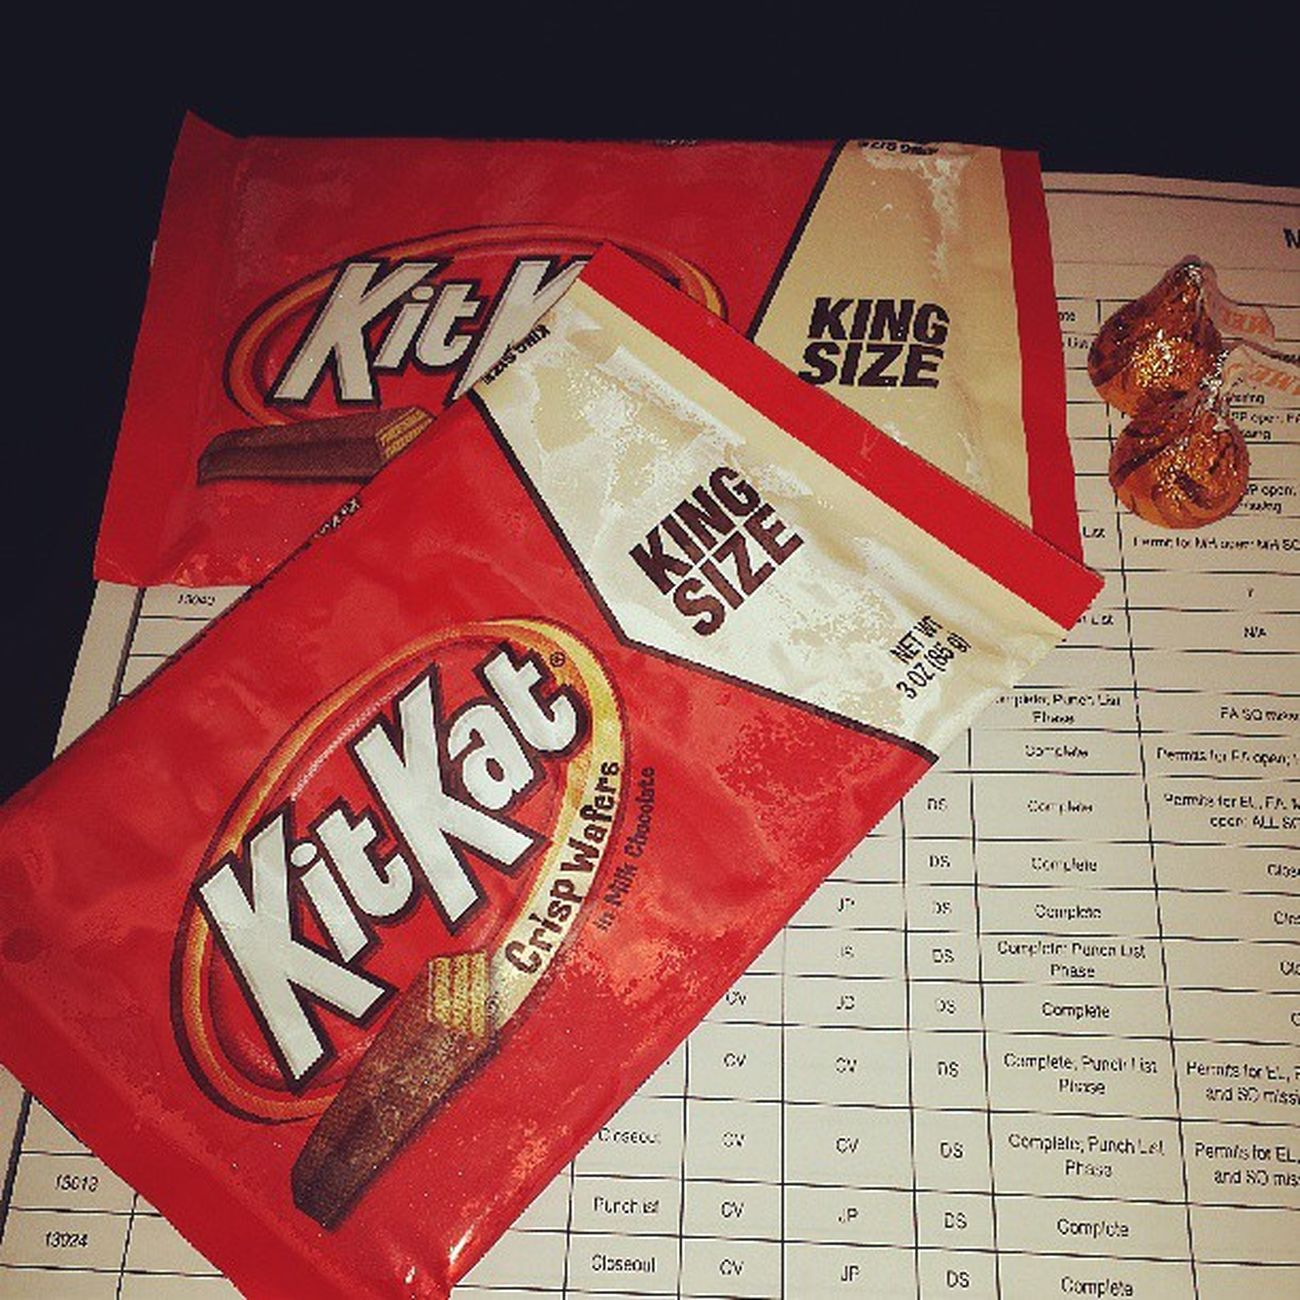 Break time!!! Kitkat Kingsize Crispwafers Milkchocolate hersheyskisses caramelfilling snacktime